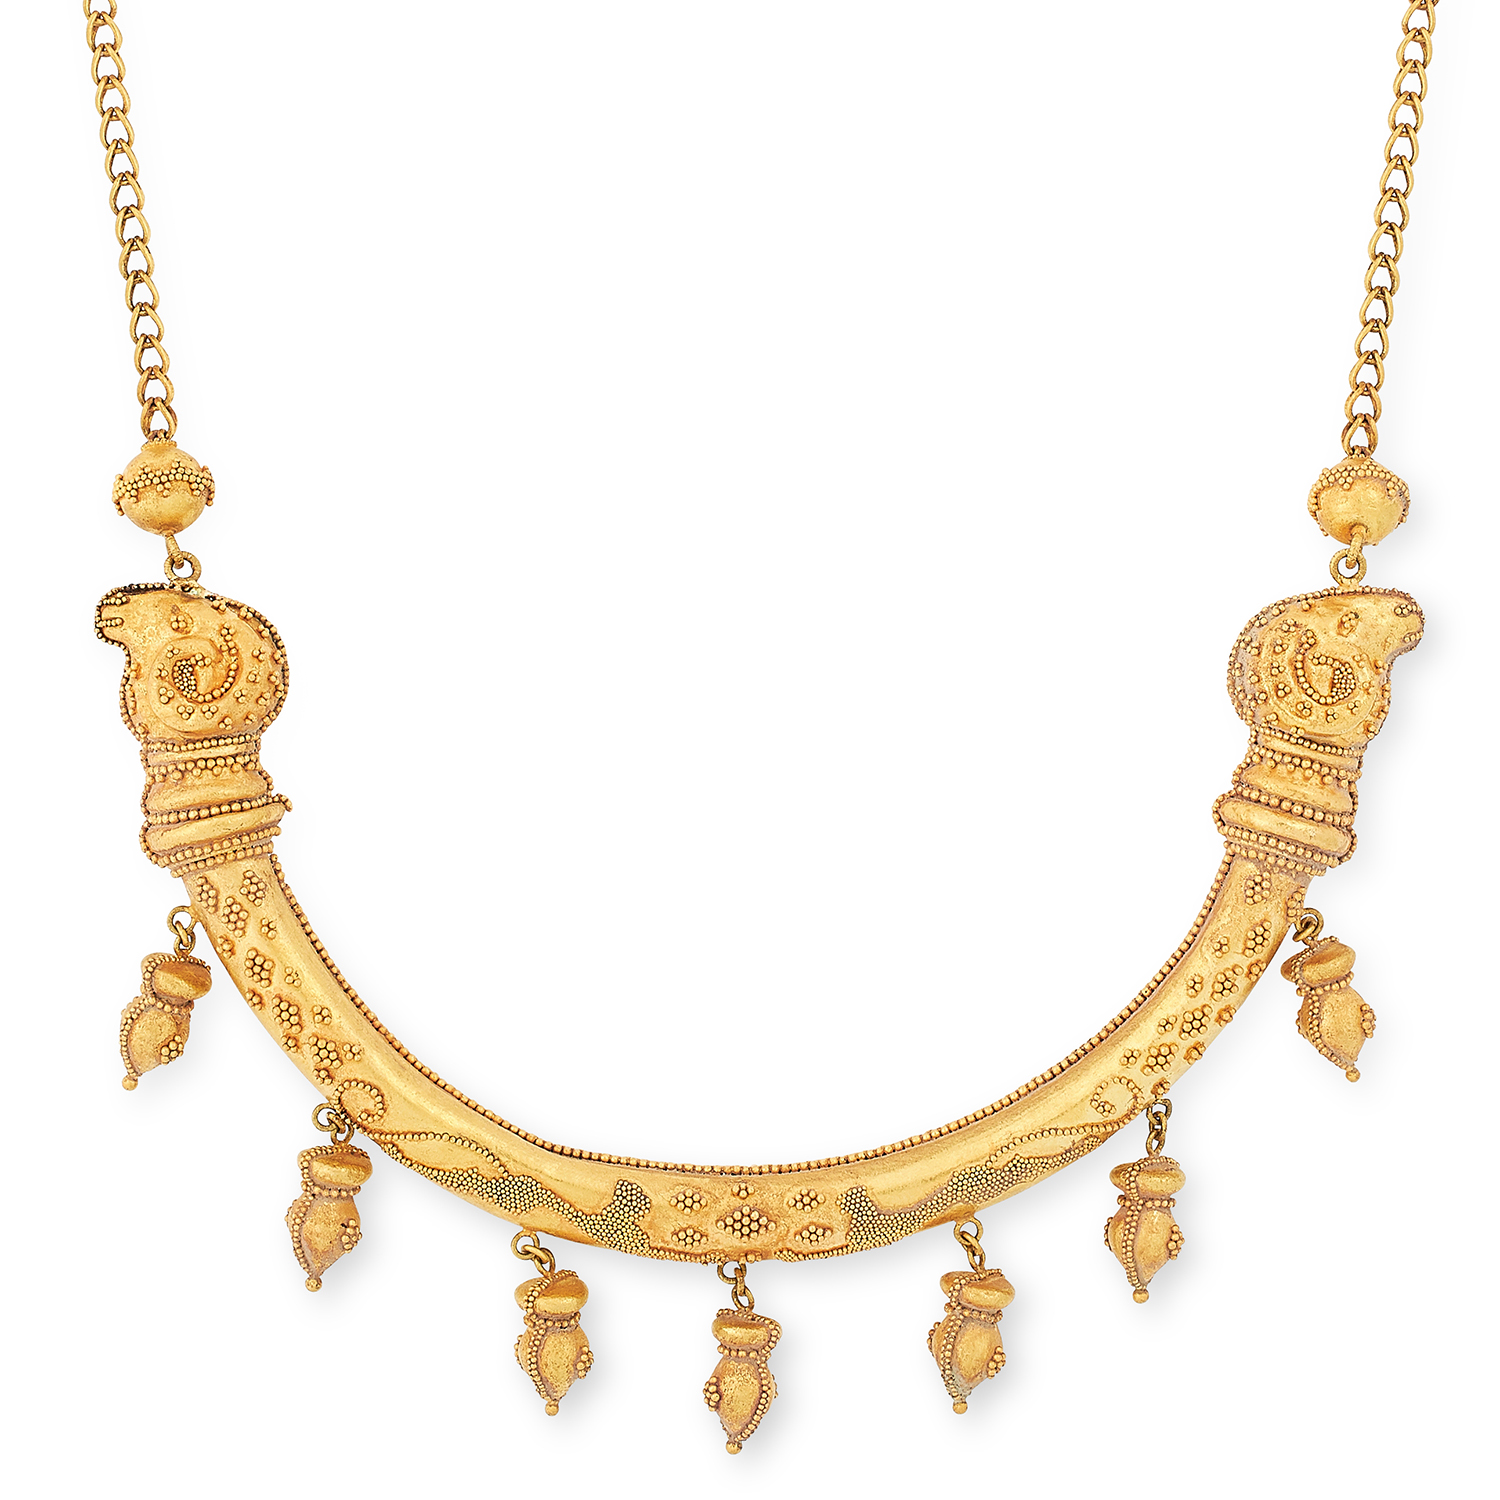 ANTIQUE FANCY LINK COLLAR NECKLACE, CIRCA 1880 formed of articulated gold links with beaded